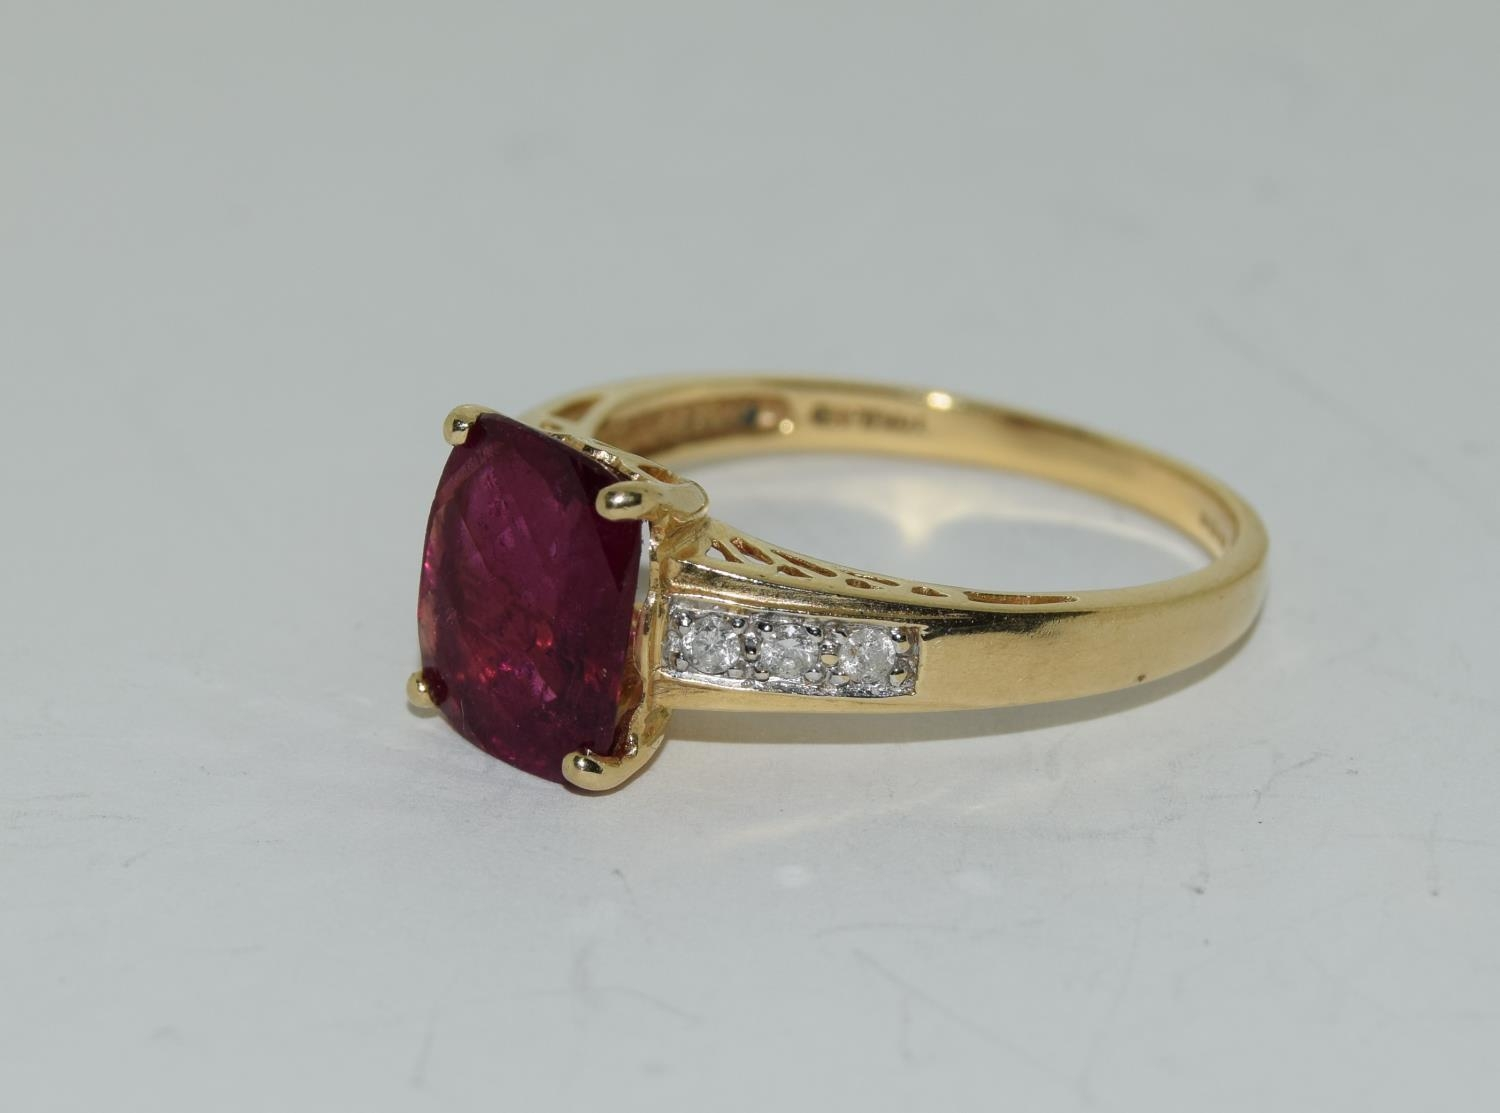 14ct gold ladies ruby and diamond ring ,ruby approx 3ct daimonds to the shoulders size T - Image 4 of 6